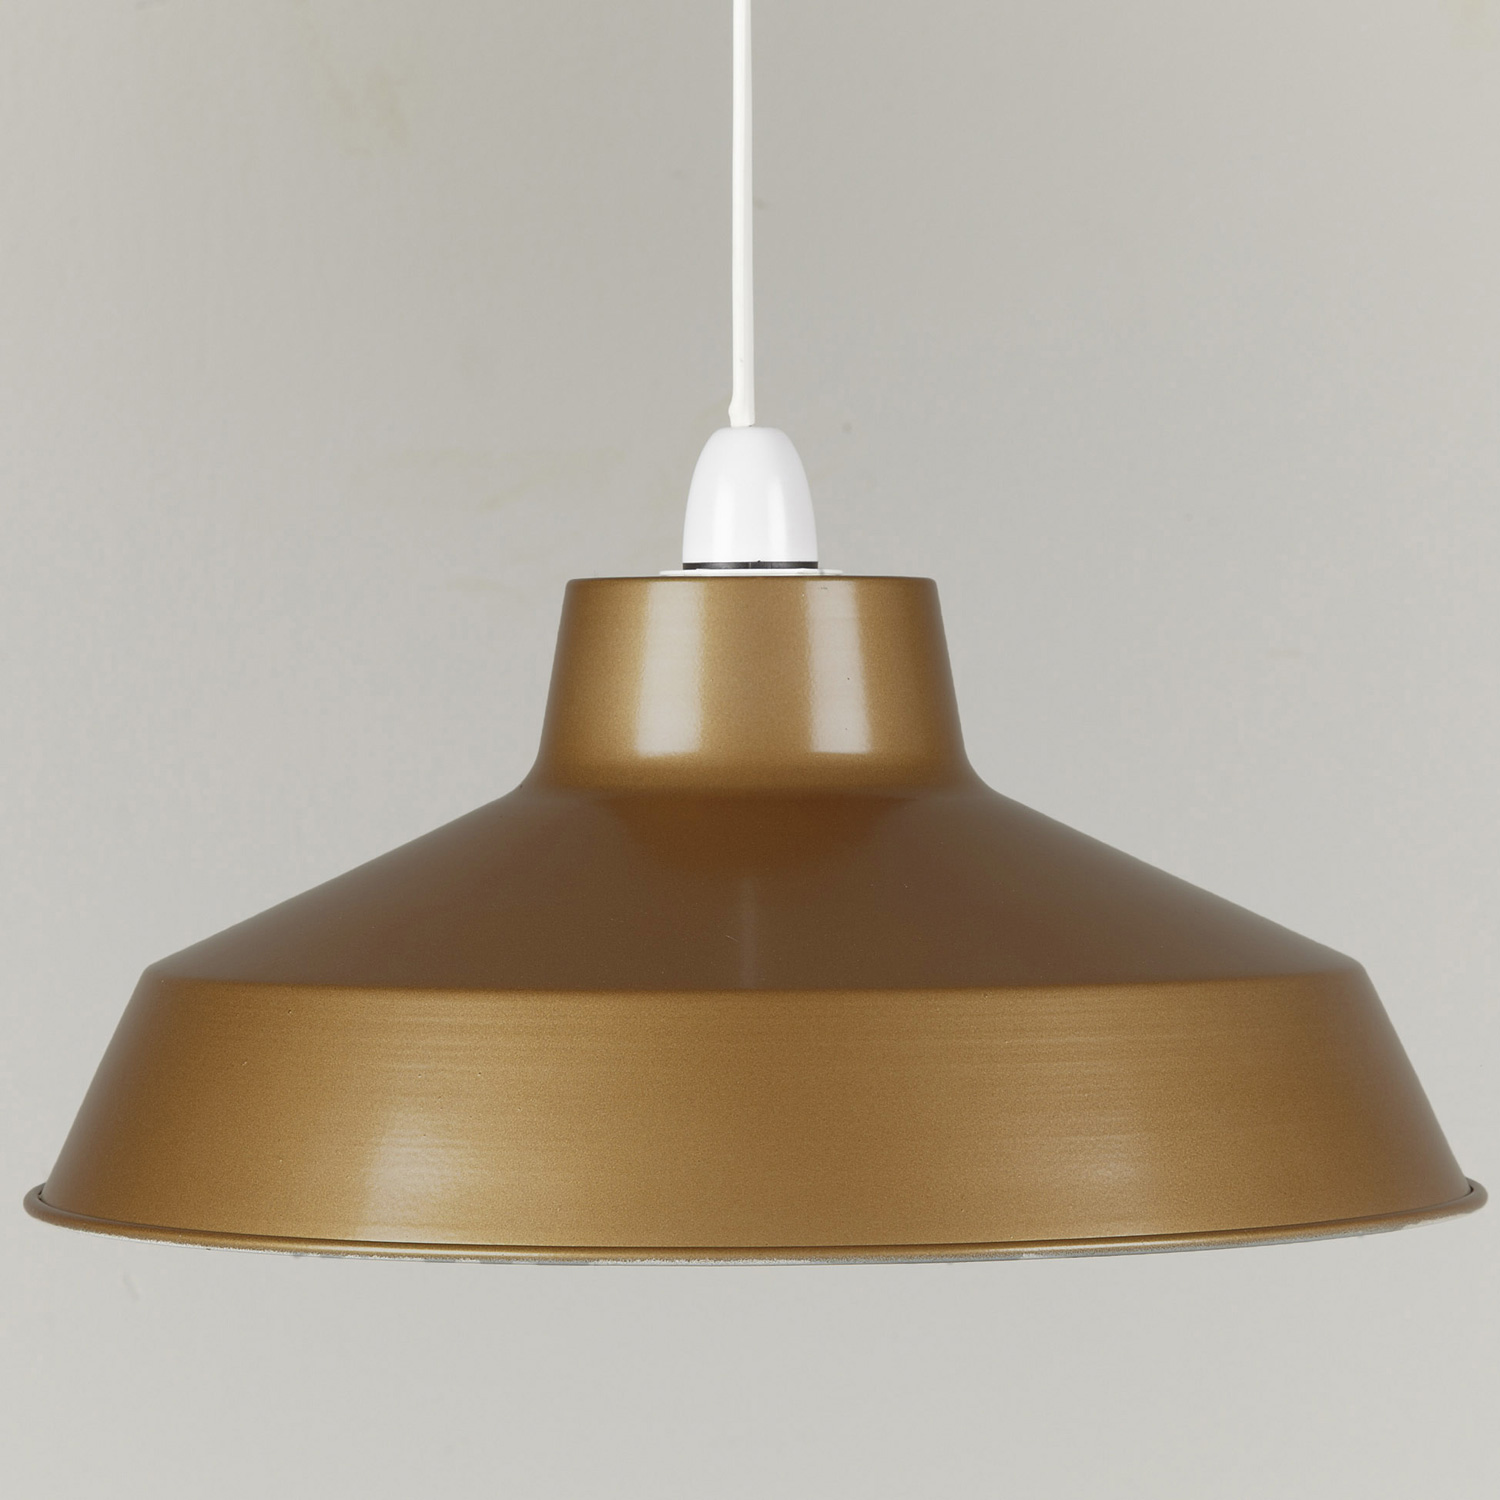 metal ceiling light shades photo - 2